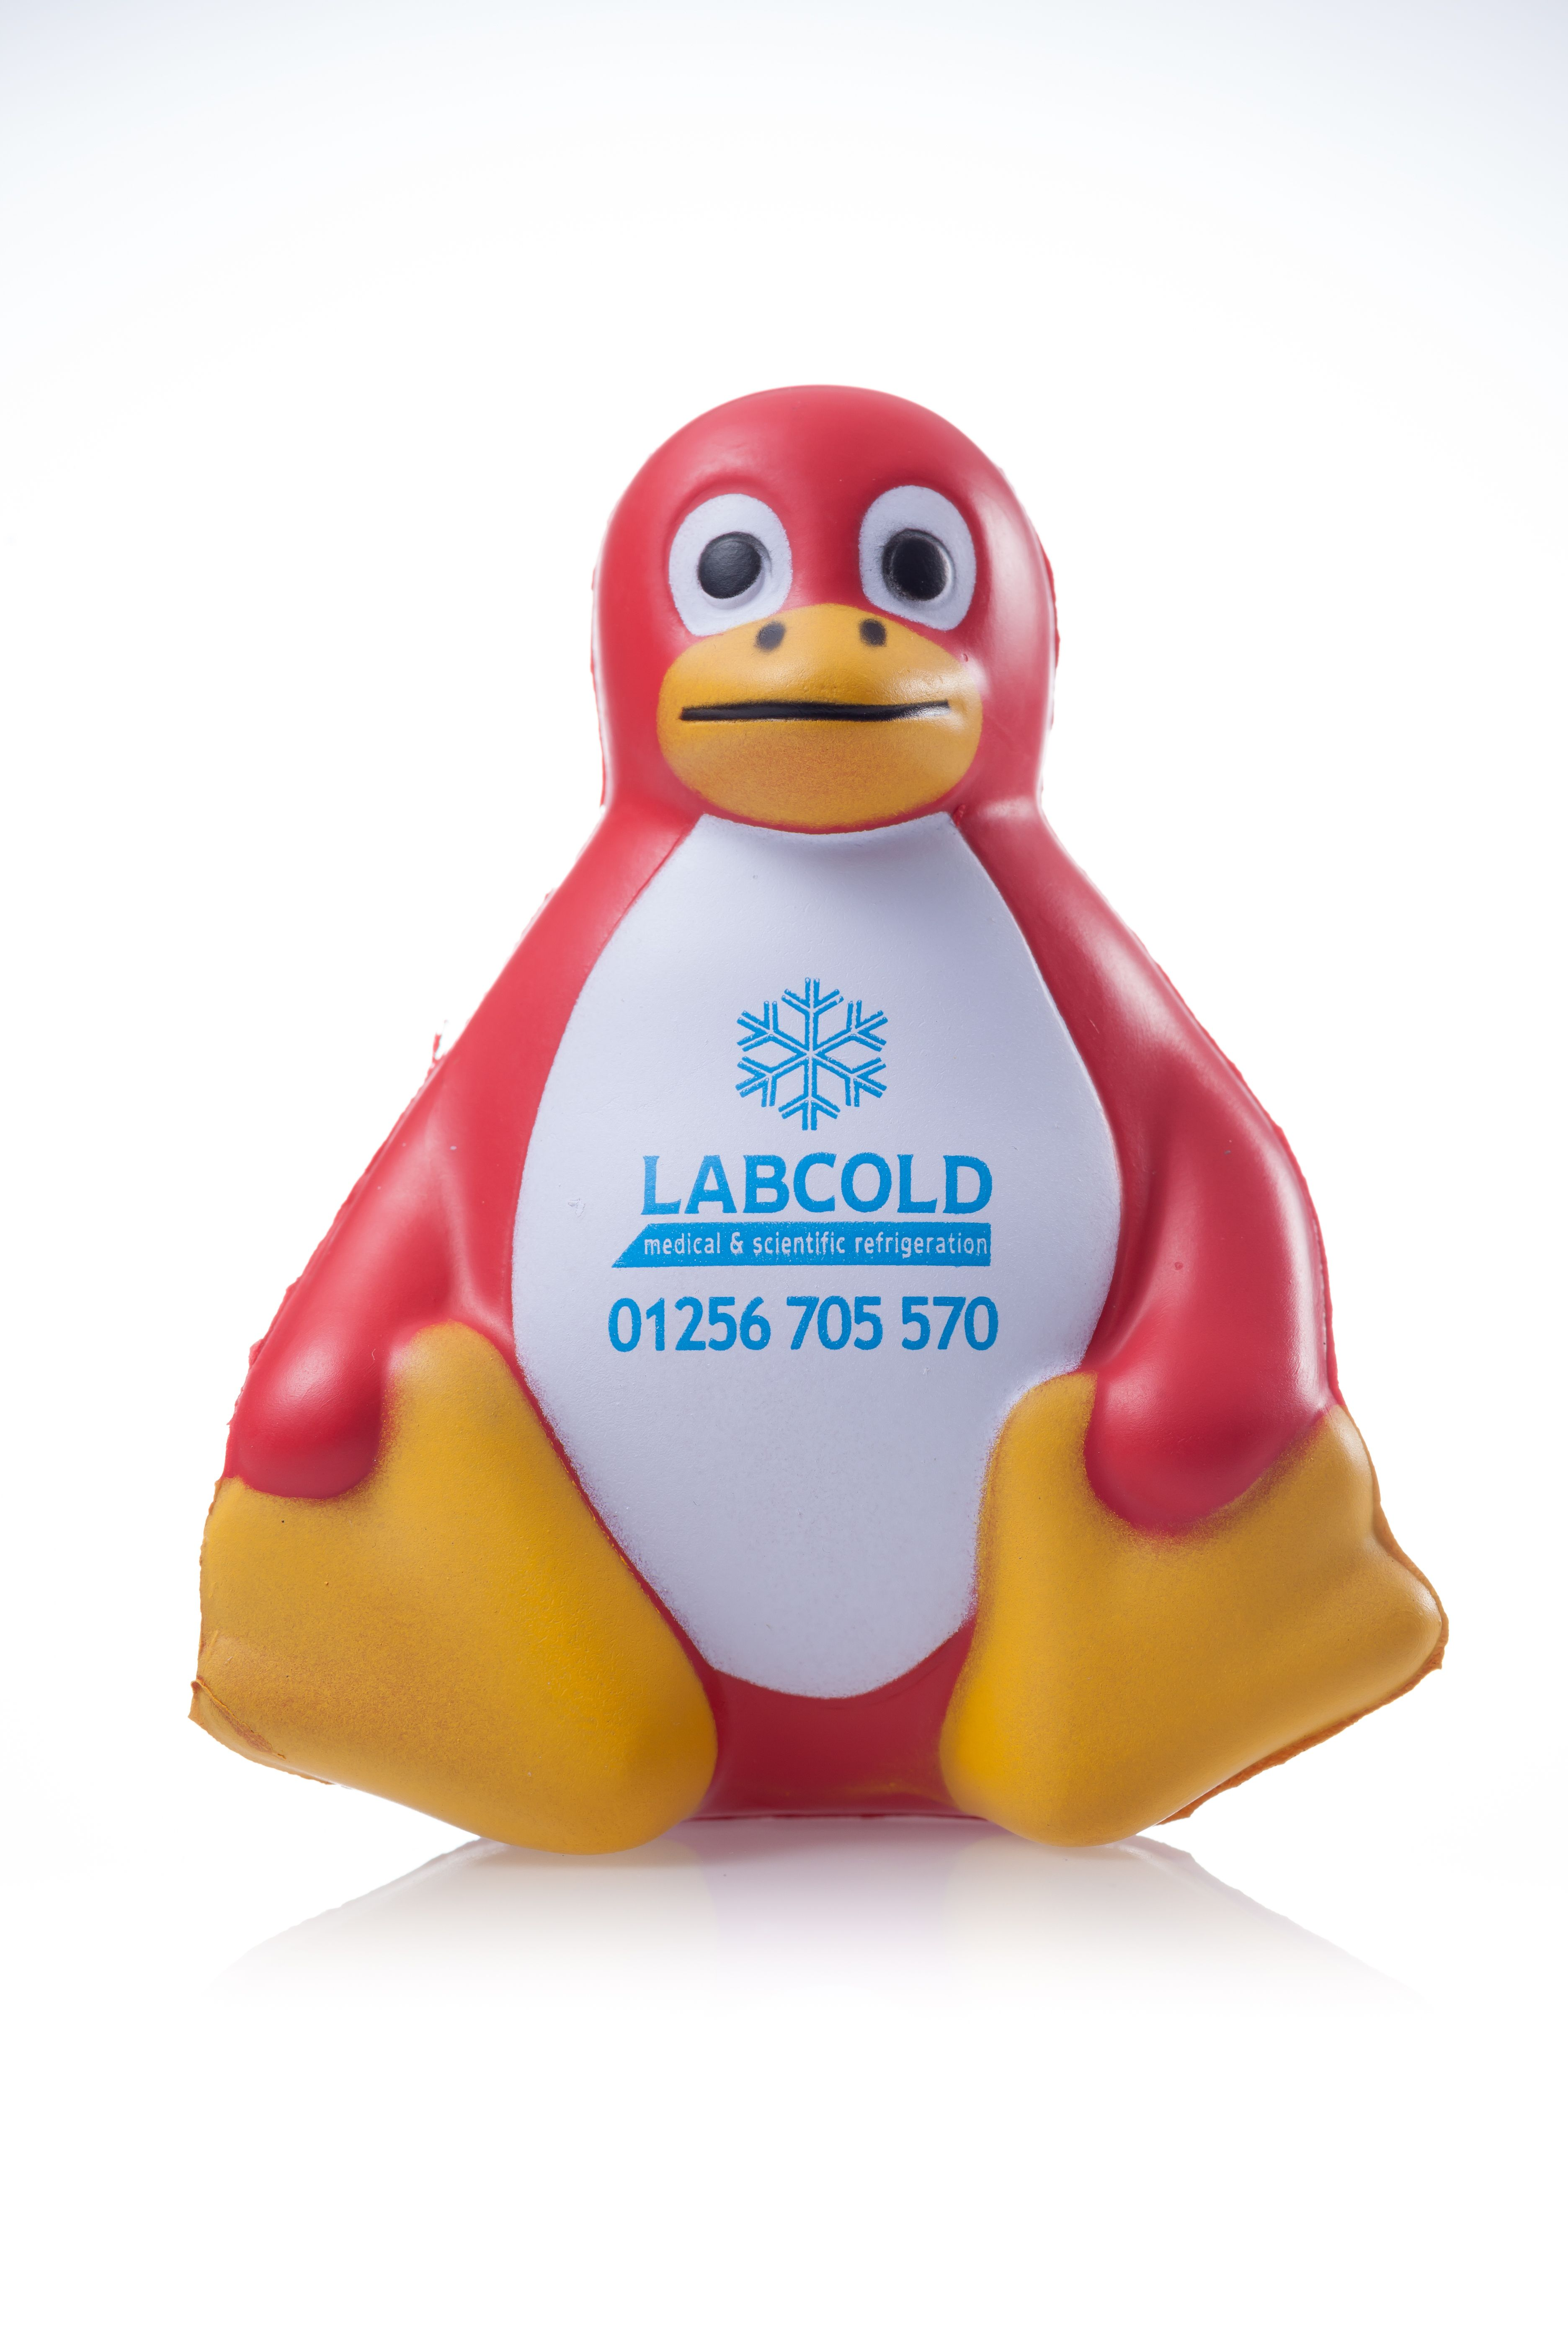 the new labcold red